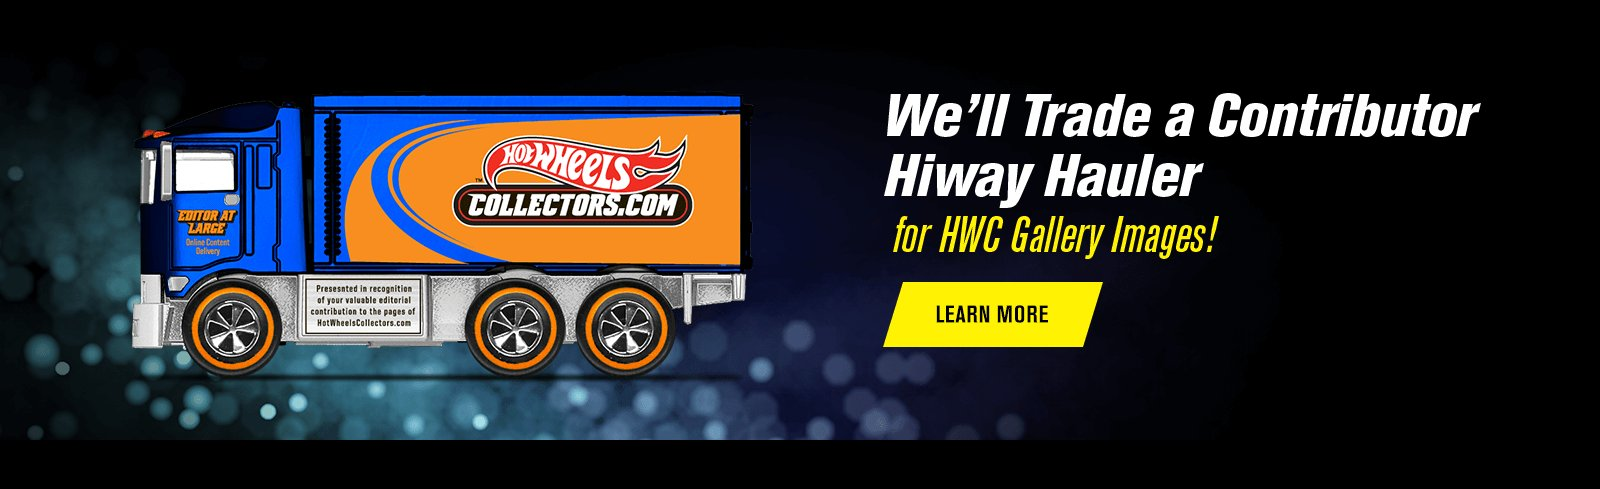 We'll Trade a Contributor Hiway Hauler for HWC Gallery Images!